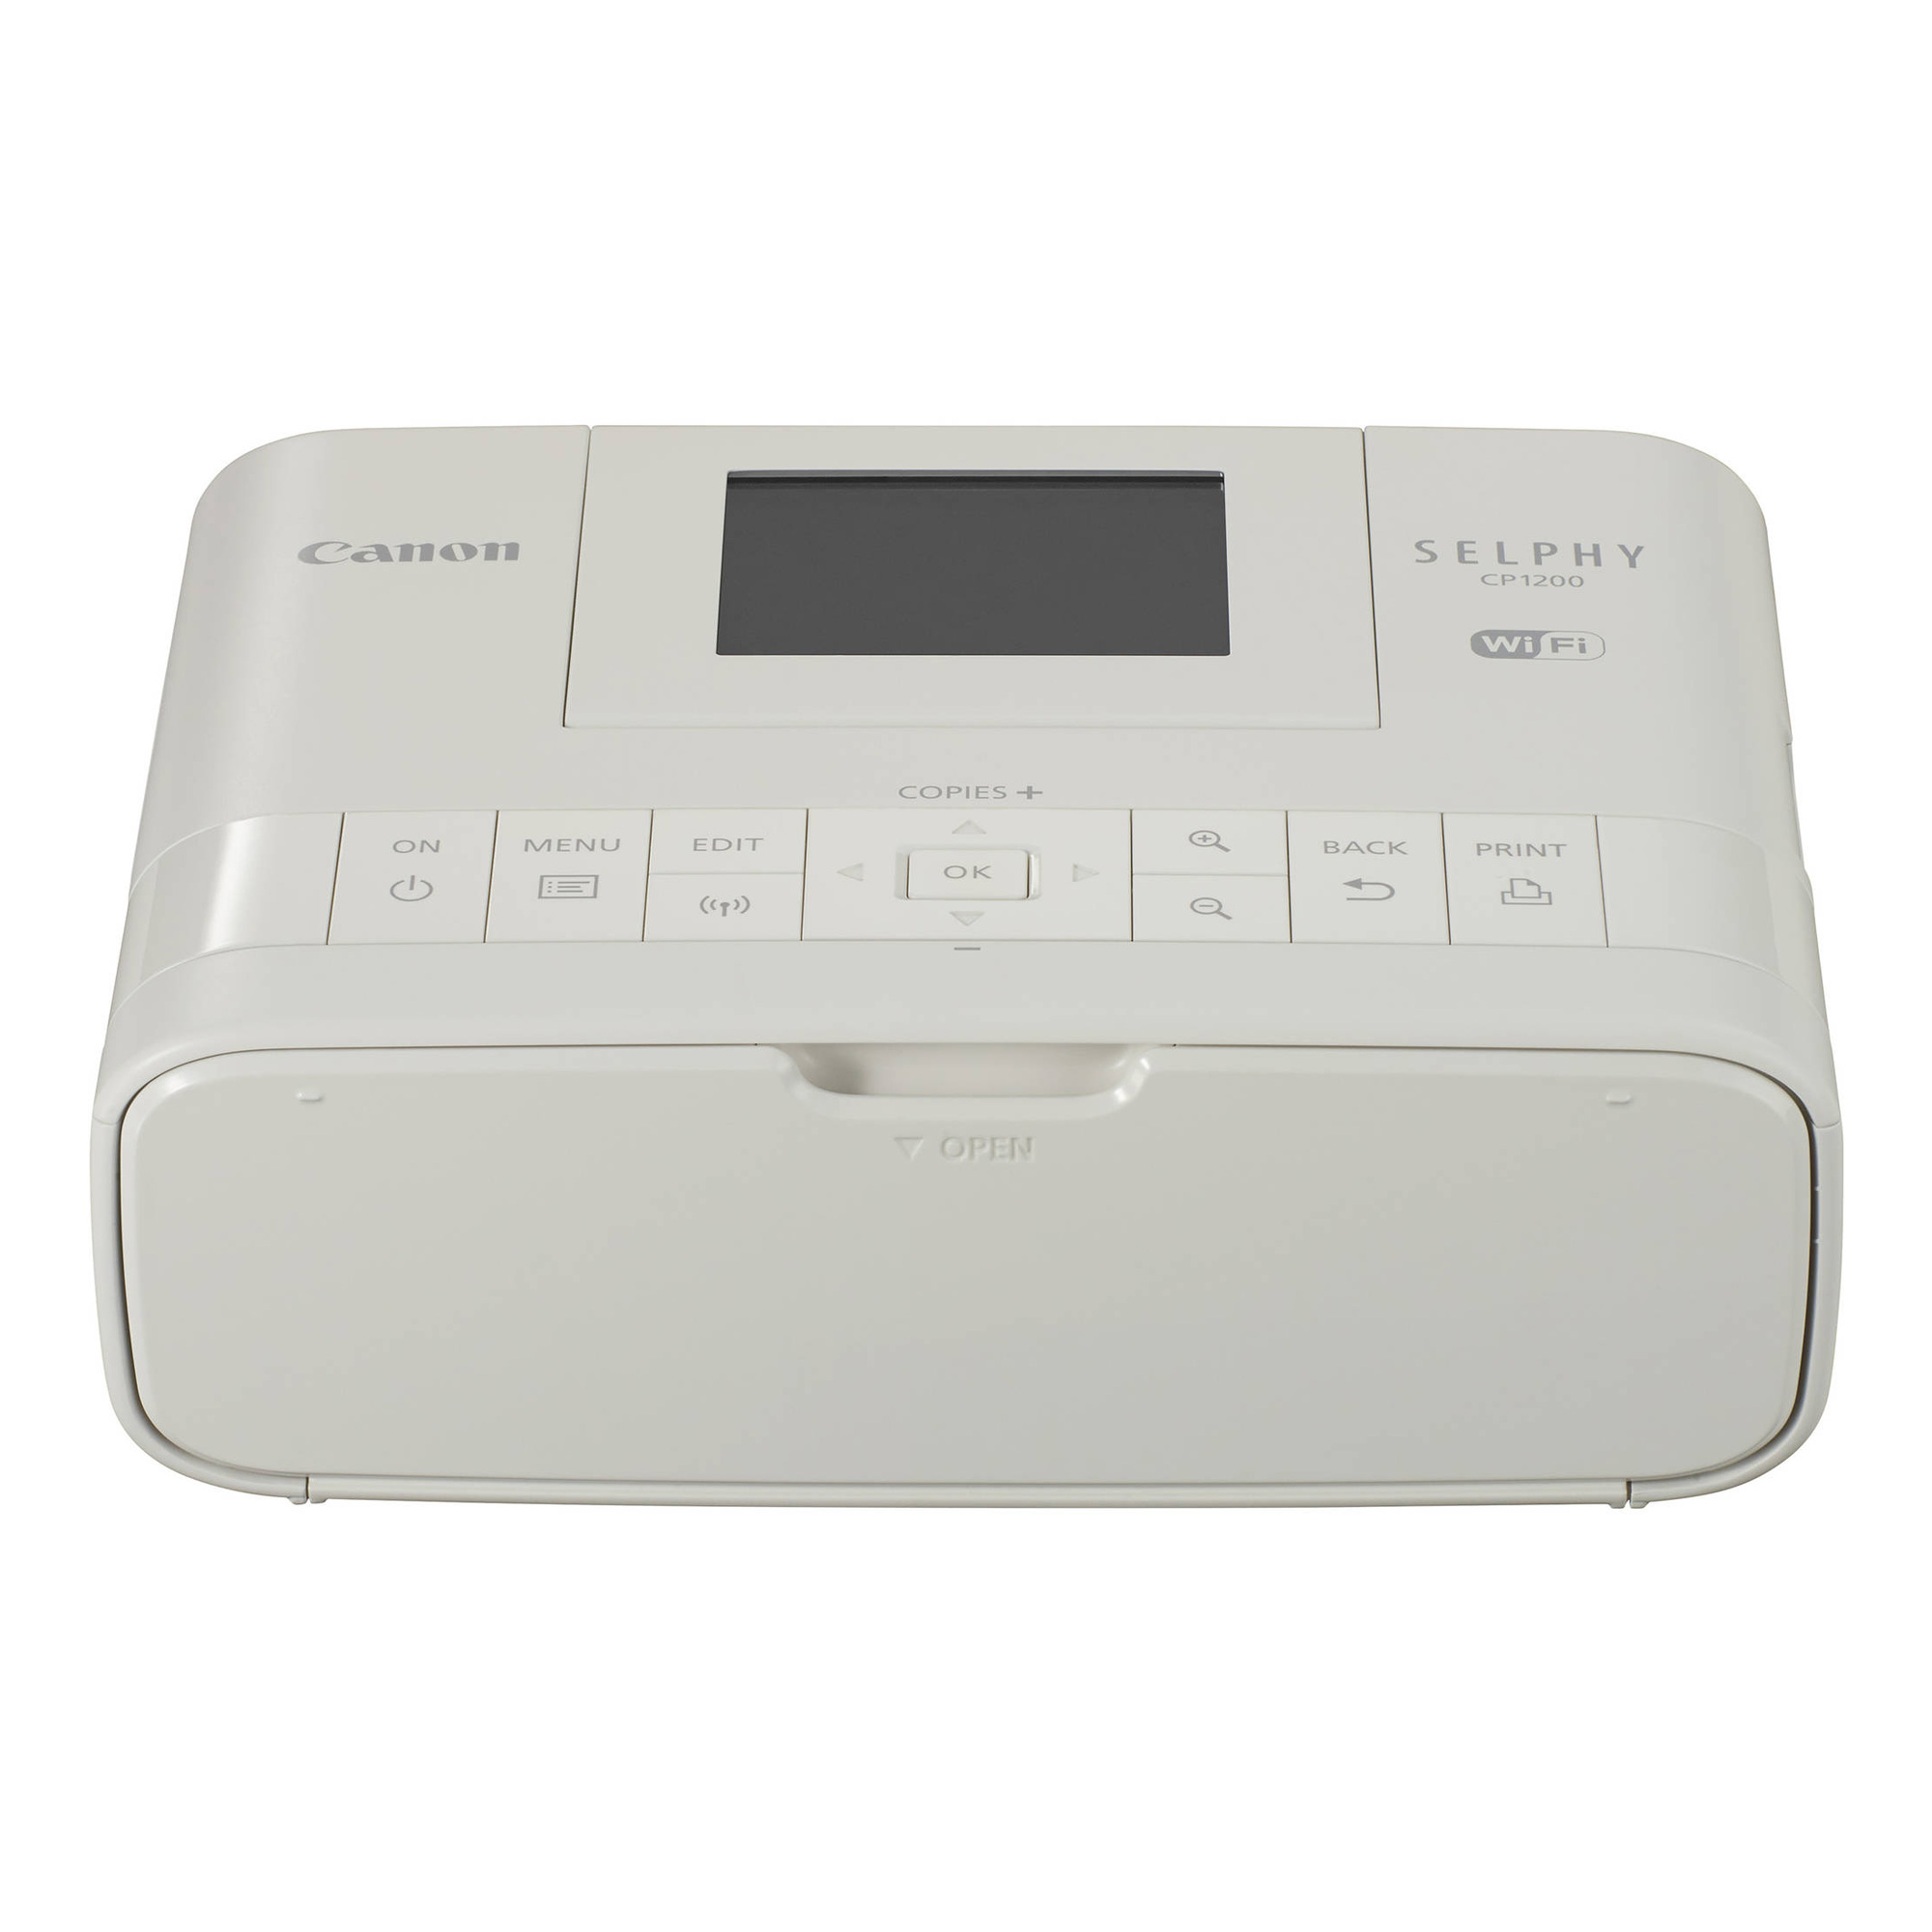 SELPHY CP1200 Wireless Compact Photo Printer White